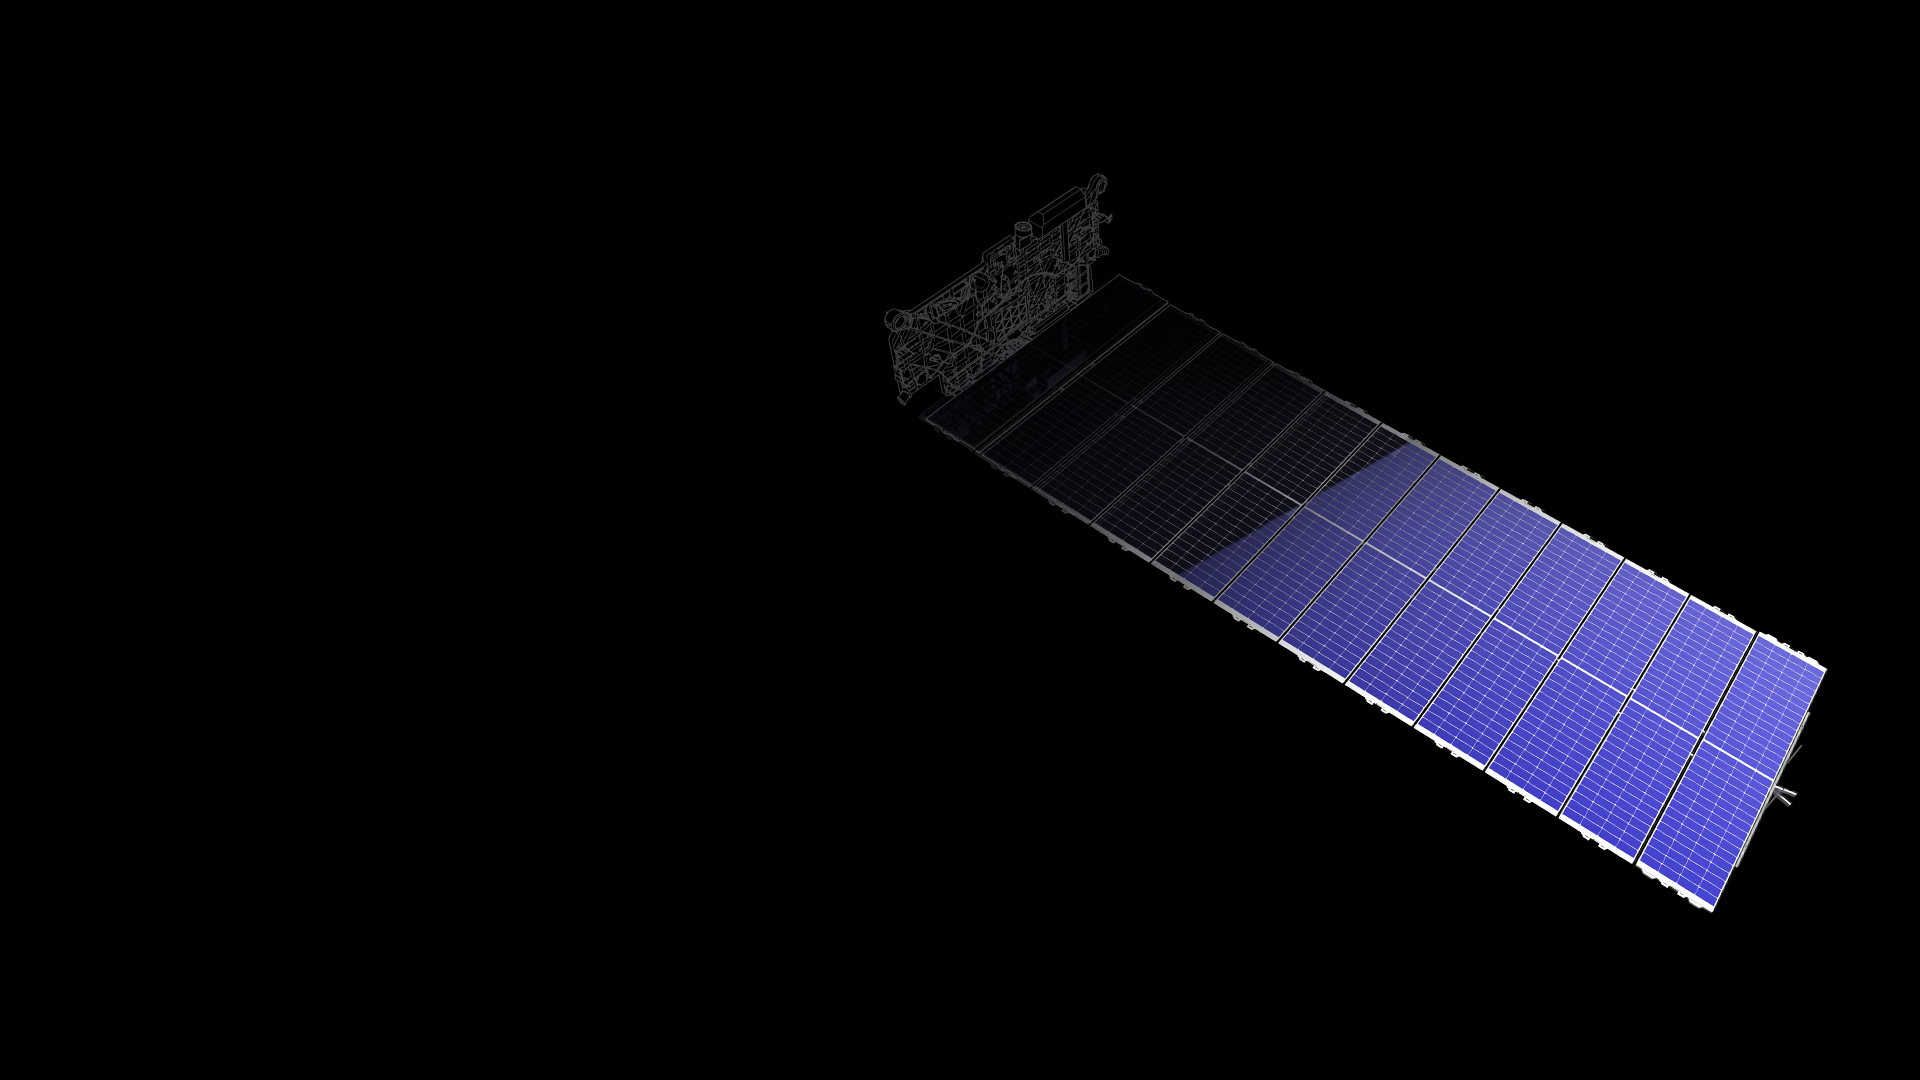 Starlink solar array (SpaceX) 1